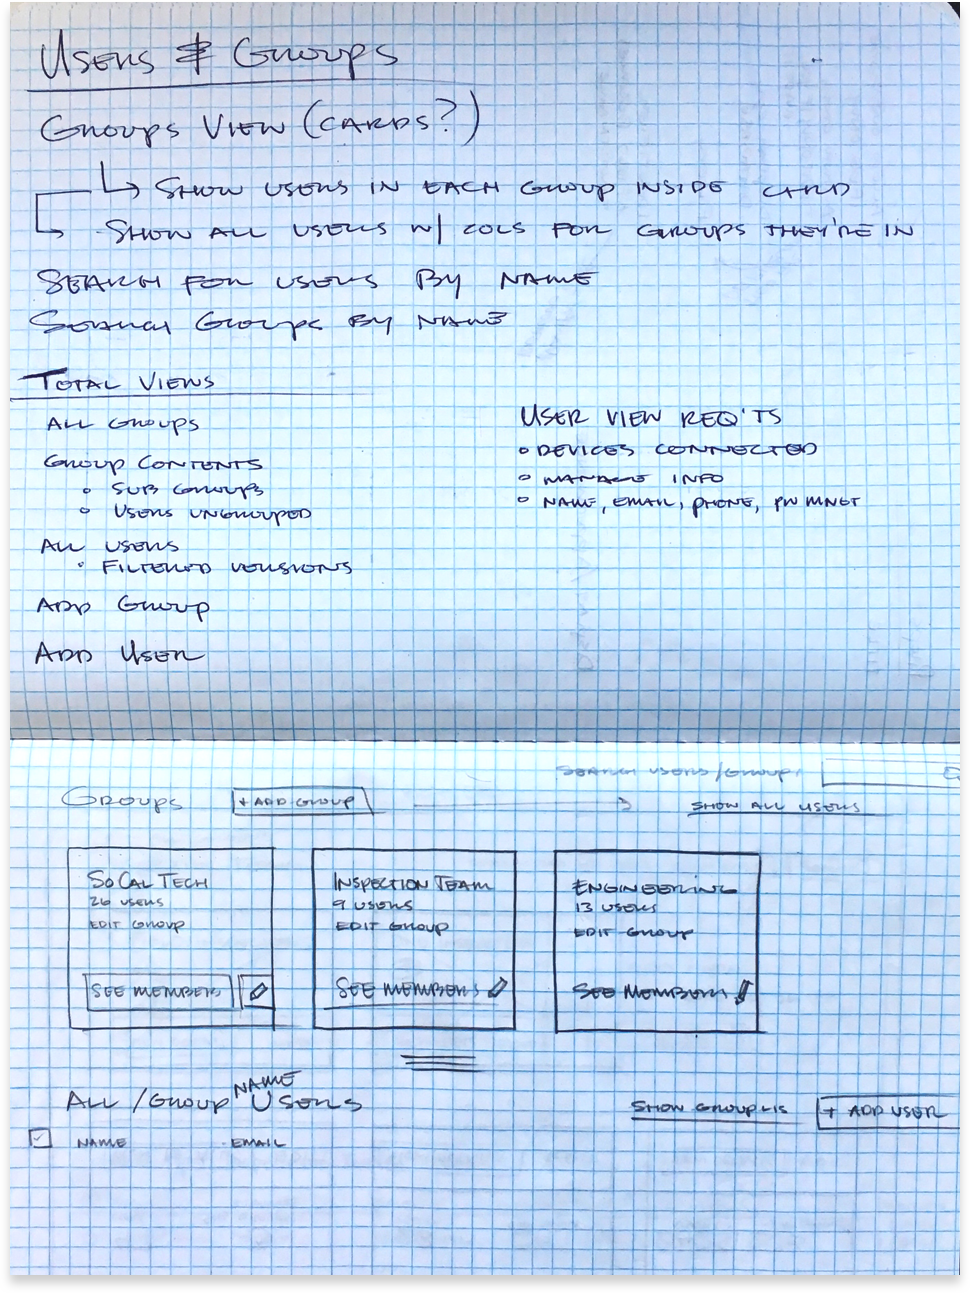 Accounting for all the controls and info via sketching